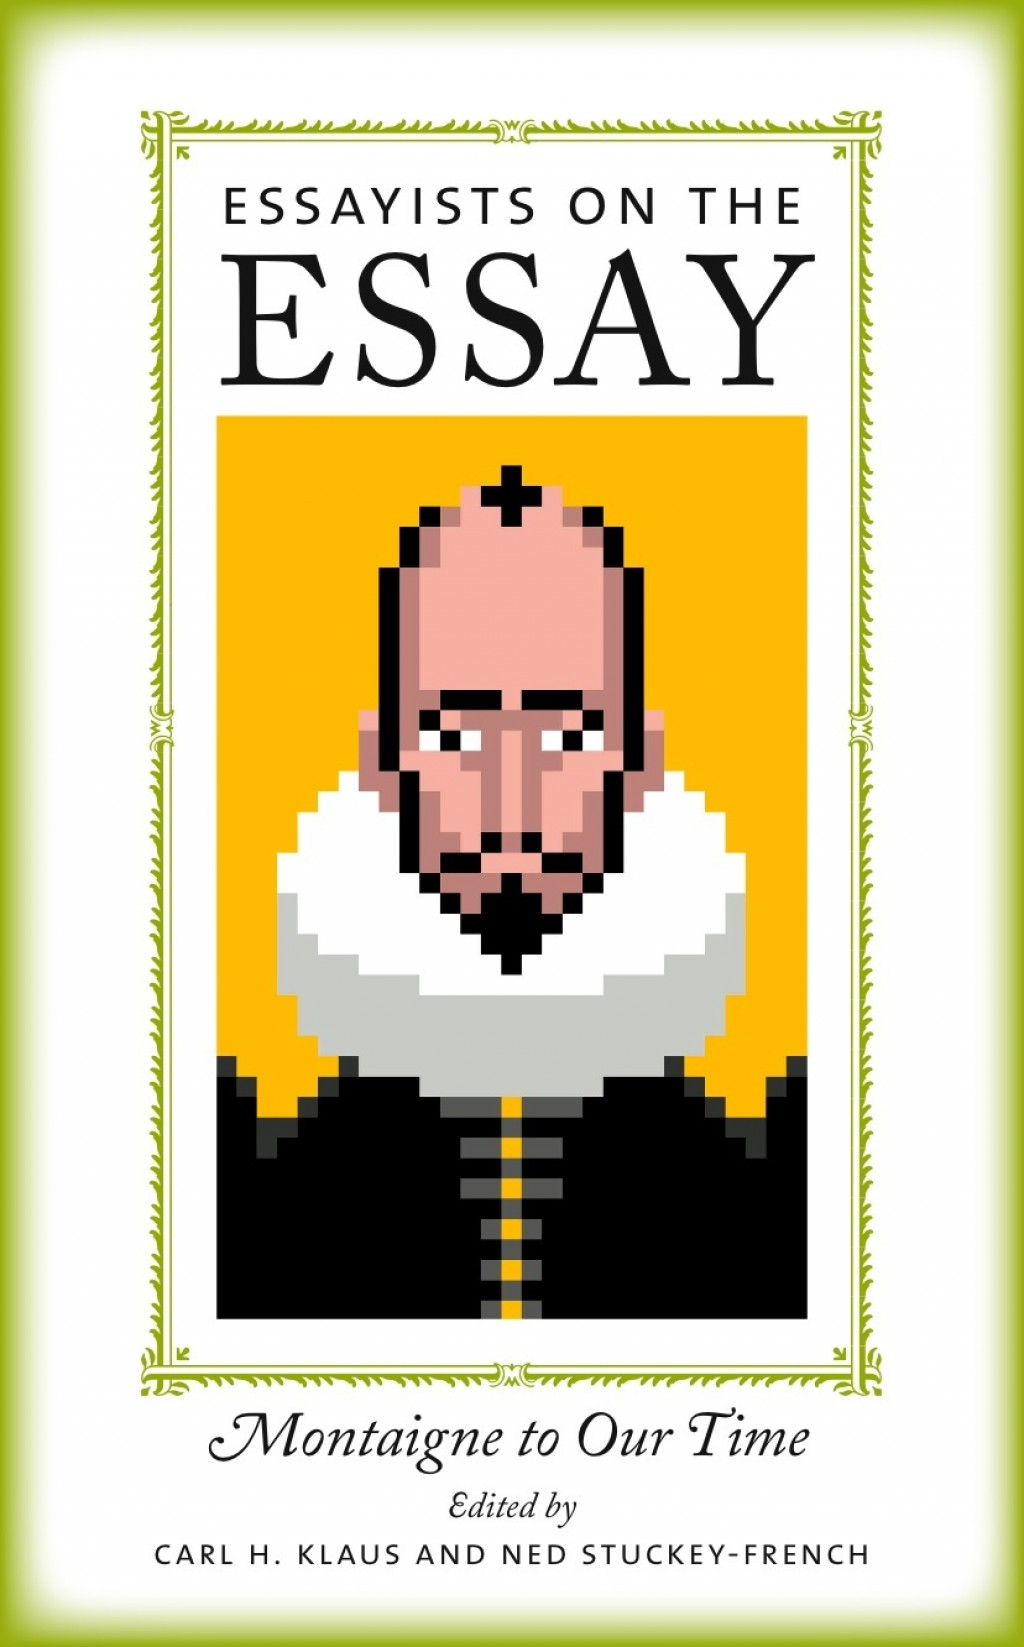 024 Essay Example It Gets Worse Collection Of Essays Essayists On The Impressive A Free Download Epub Audiobook Large